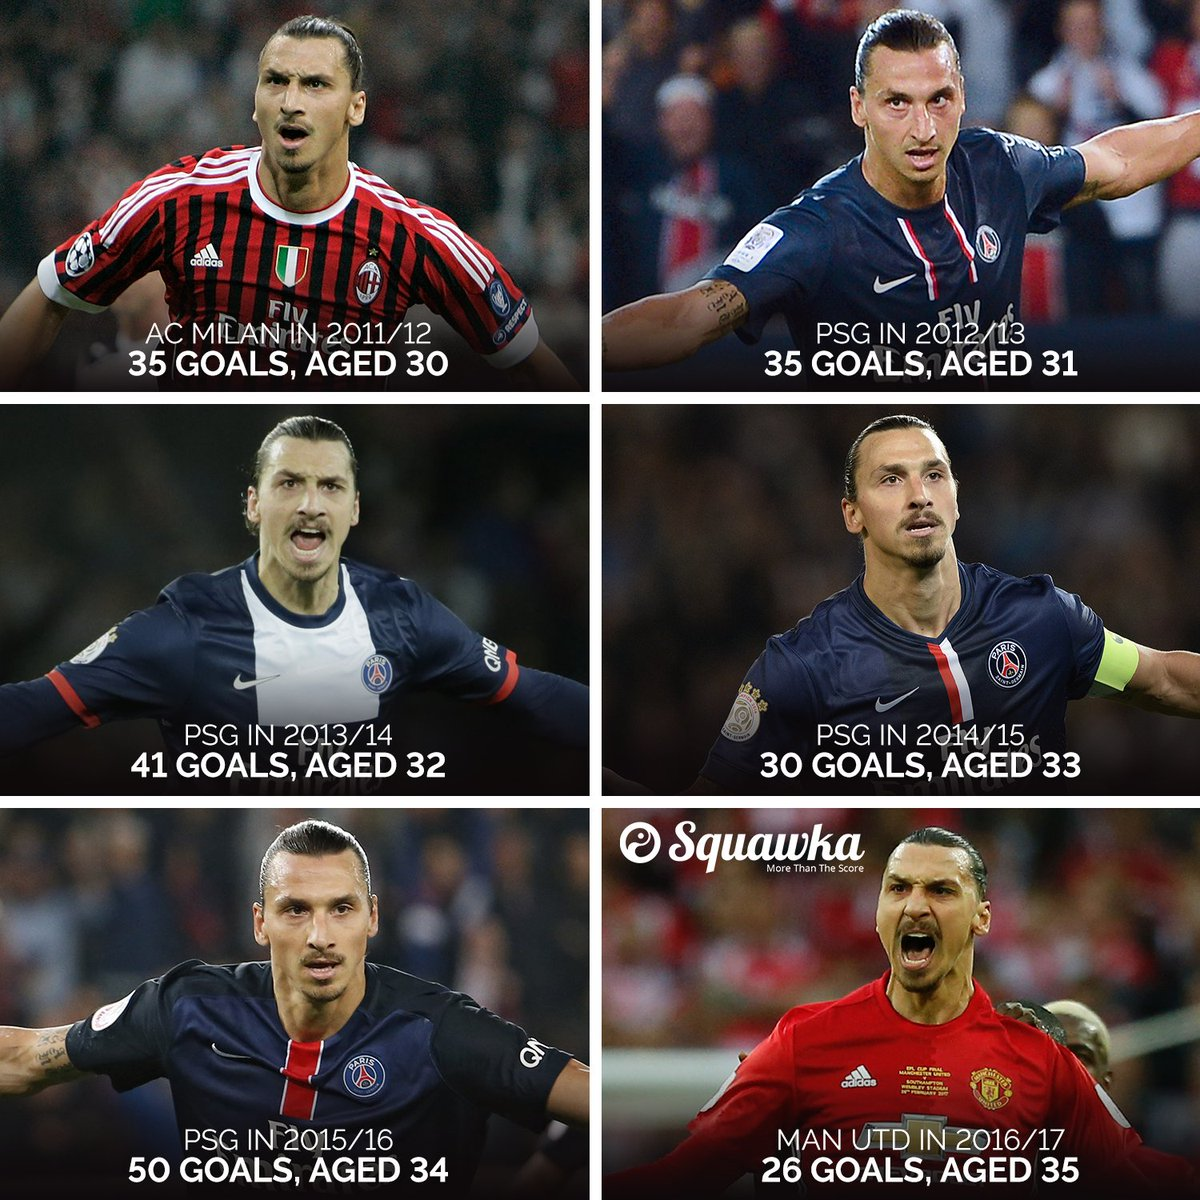 Zlatan Ibrahimovic has now scored 217 goals across all competitions si...